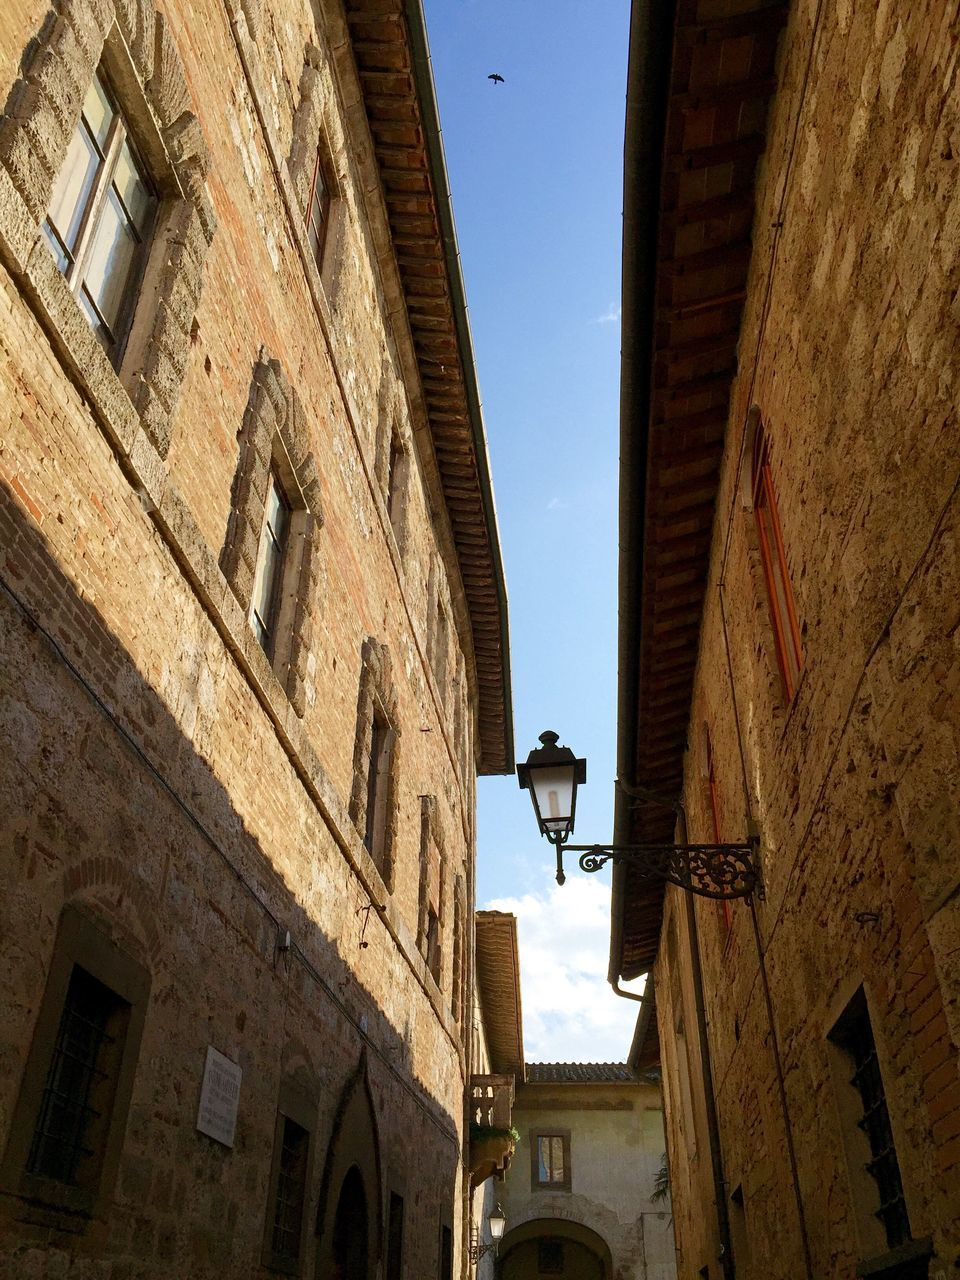 architecture, building exterior, low angle view, built structure, wall lamp, building, street light, window, no people, outdoors, day, sky